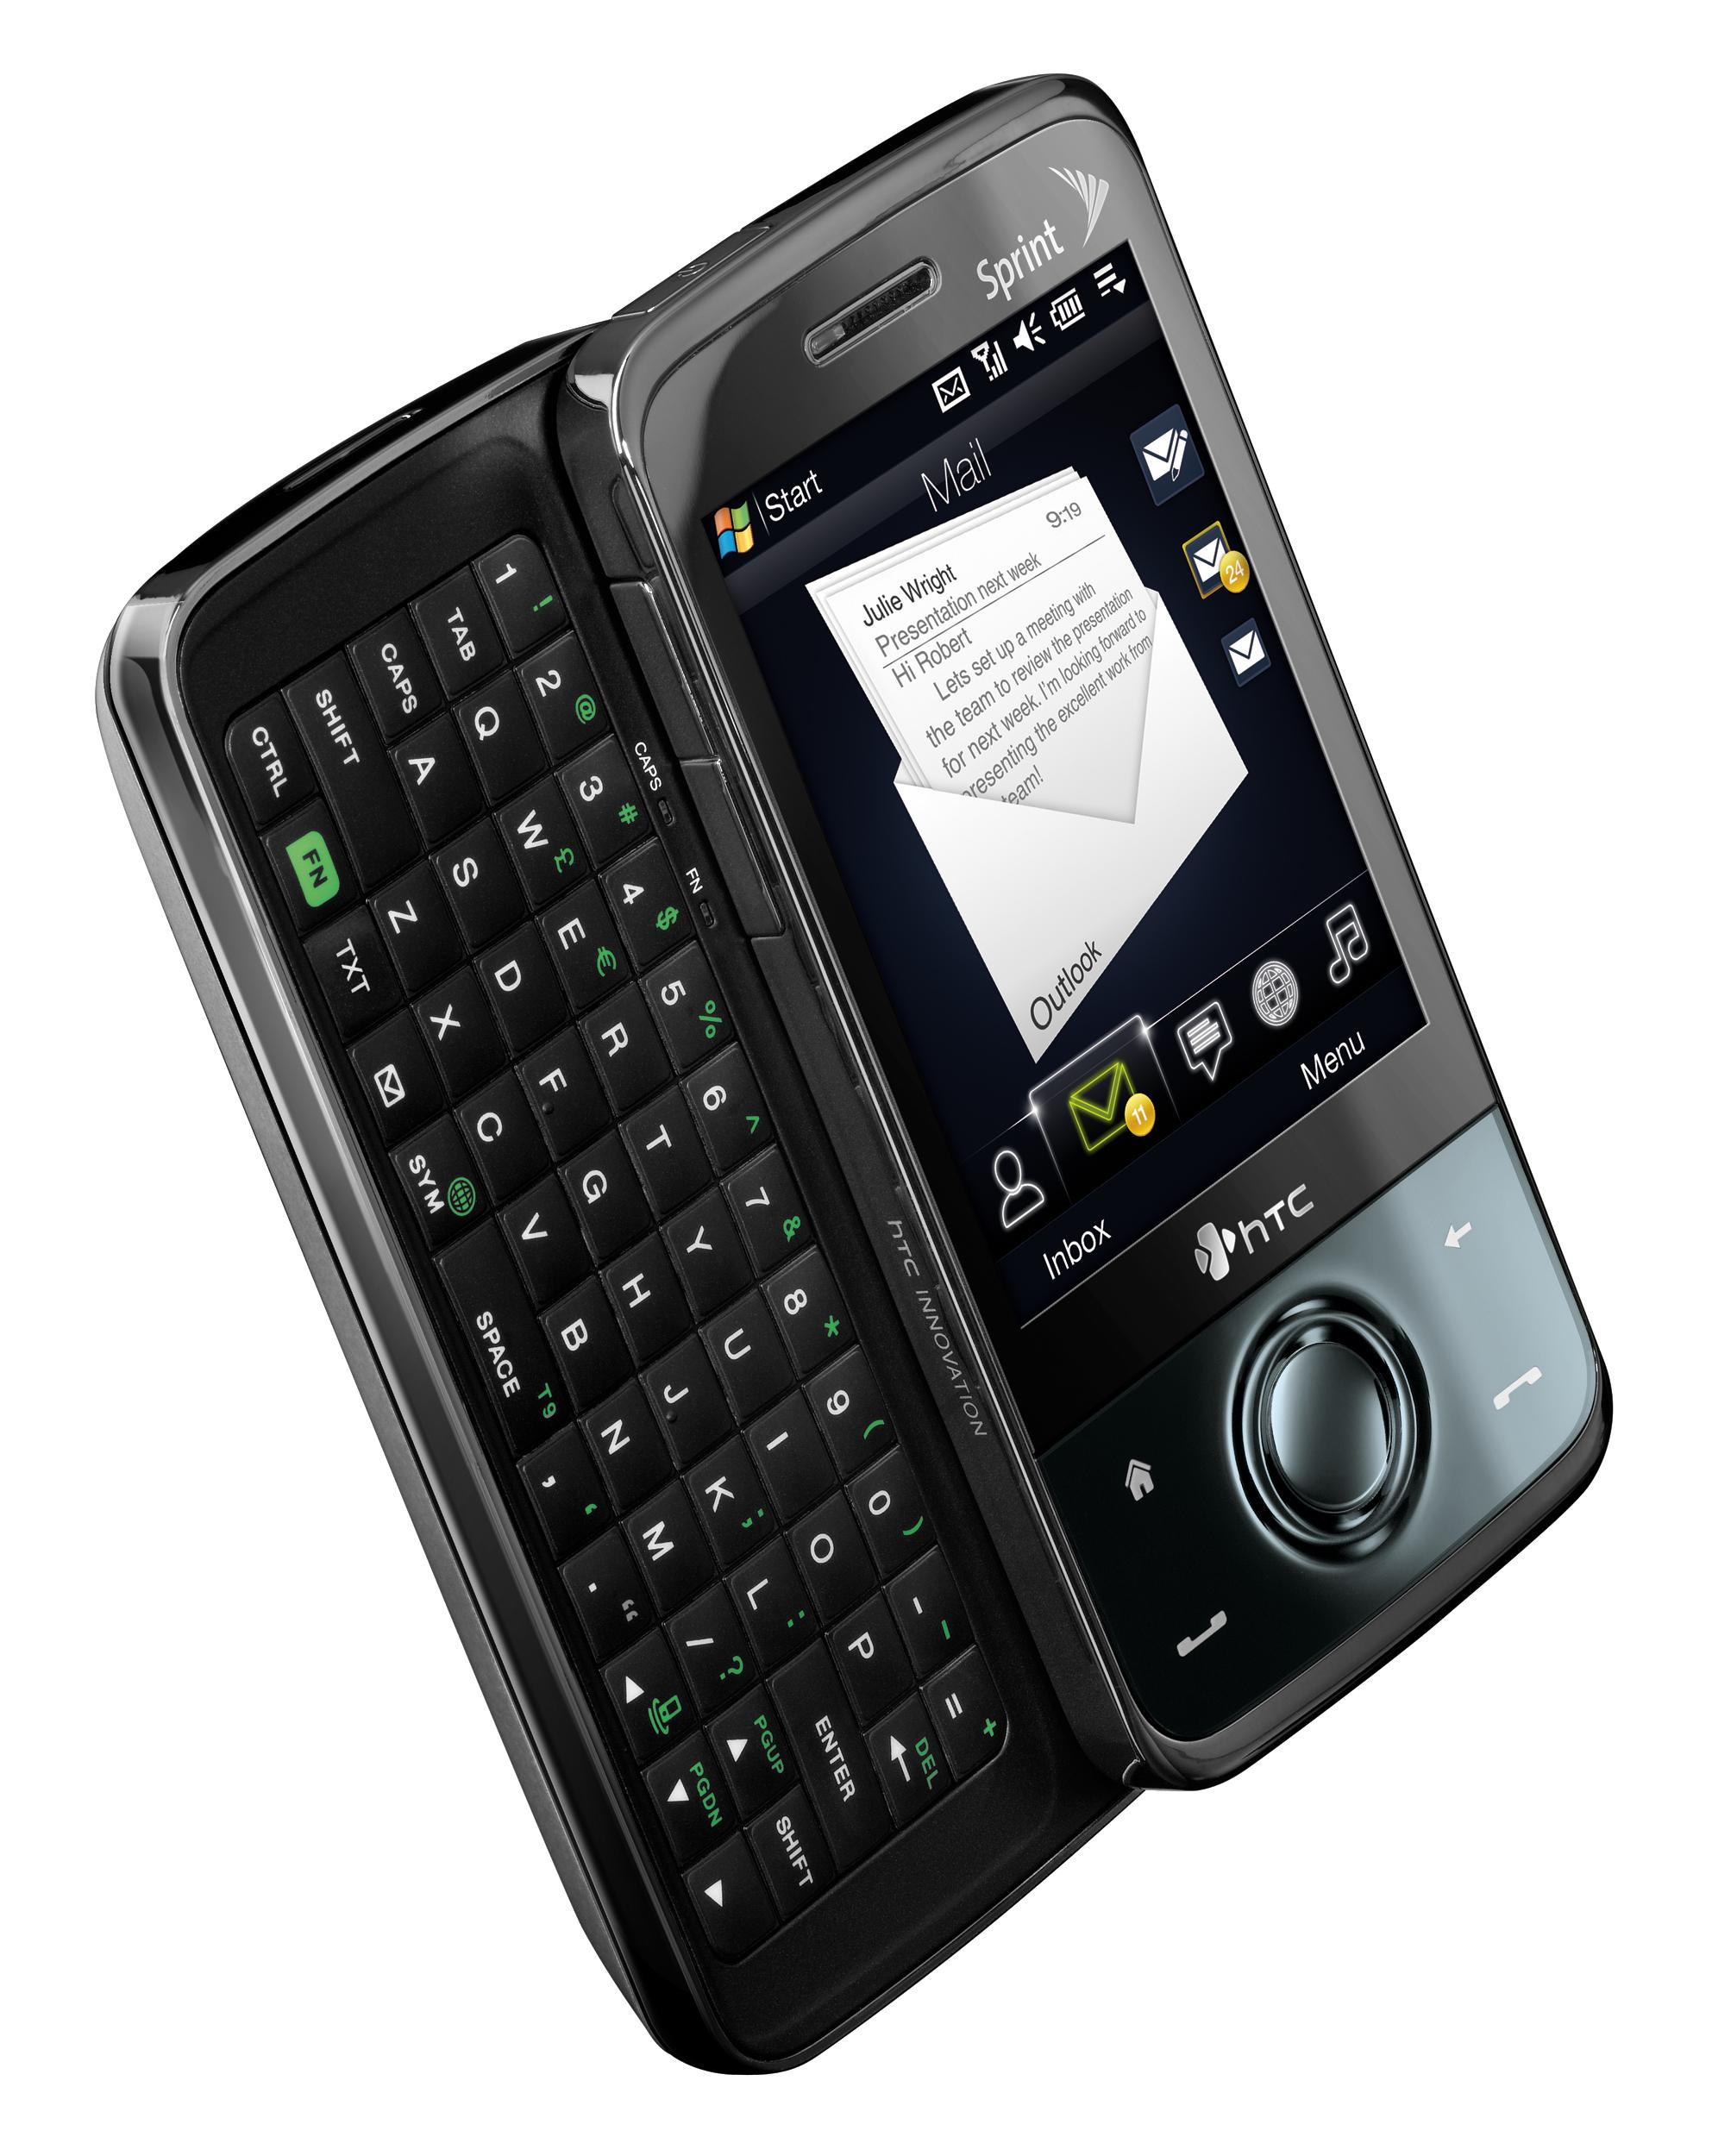 Sprint HTC Touch Pro announced: EV-DO Rev.A, QWERTY & more